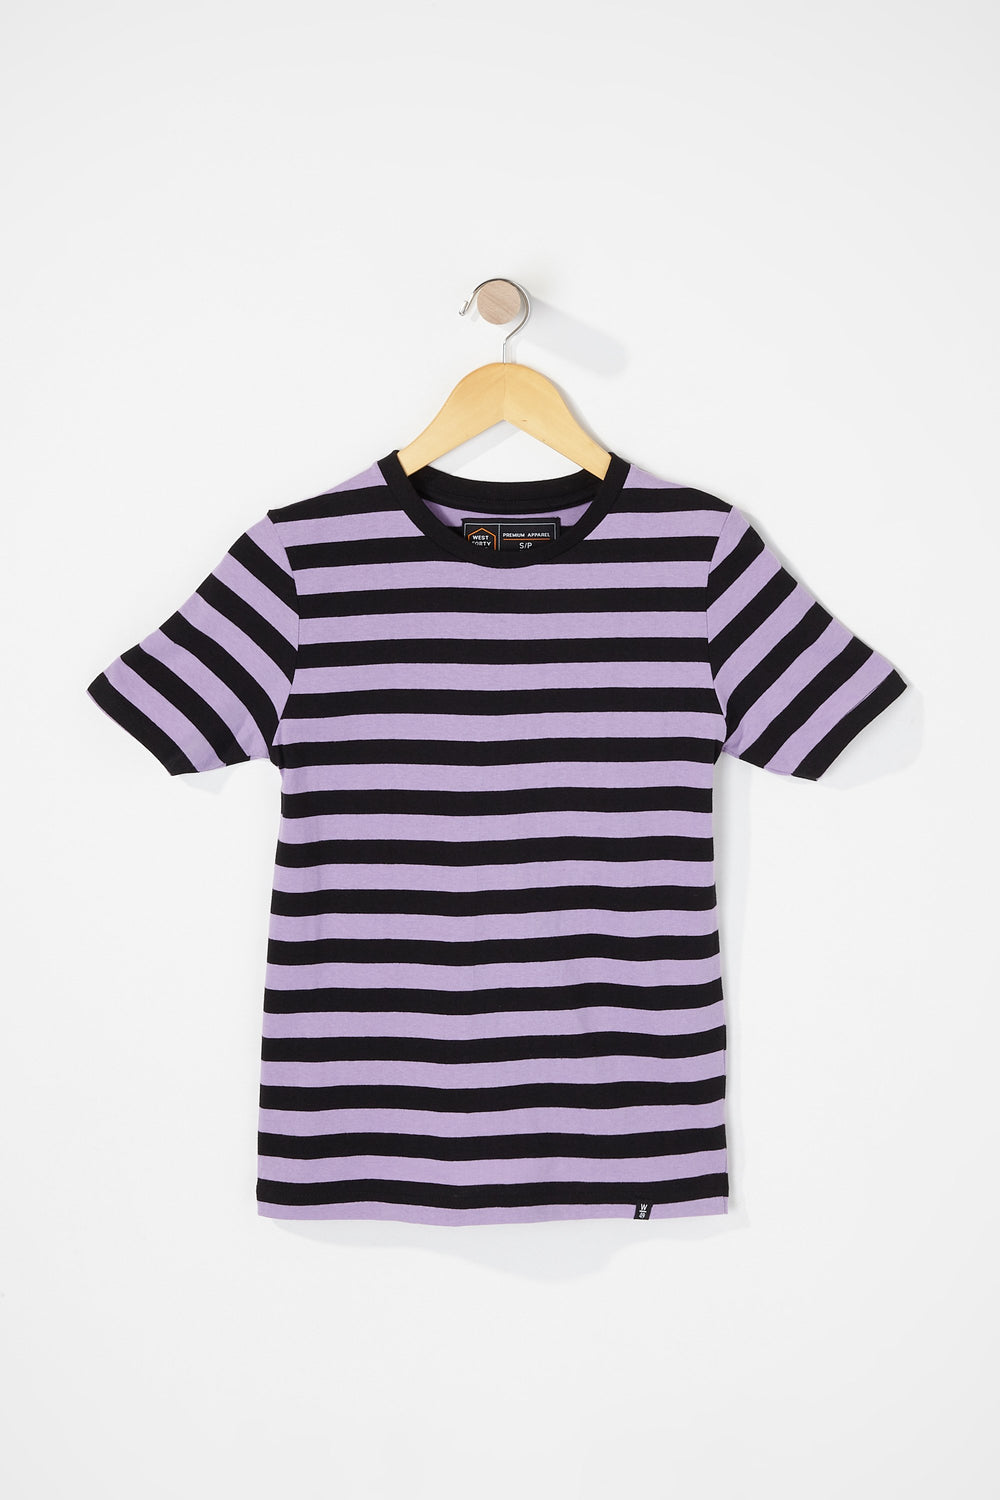 West49 Boys Striped T-Shirt Purple